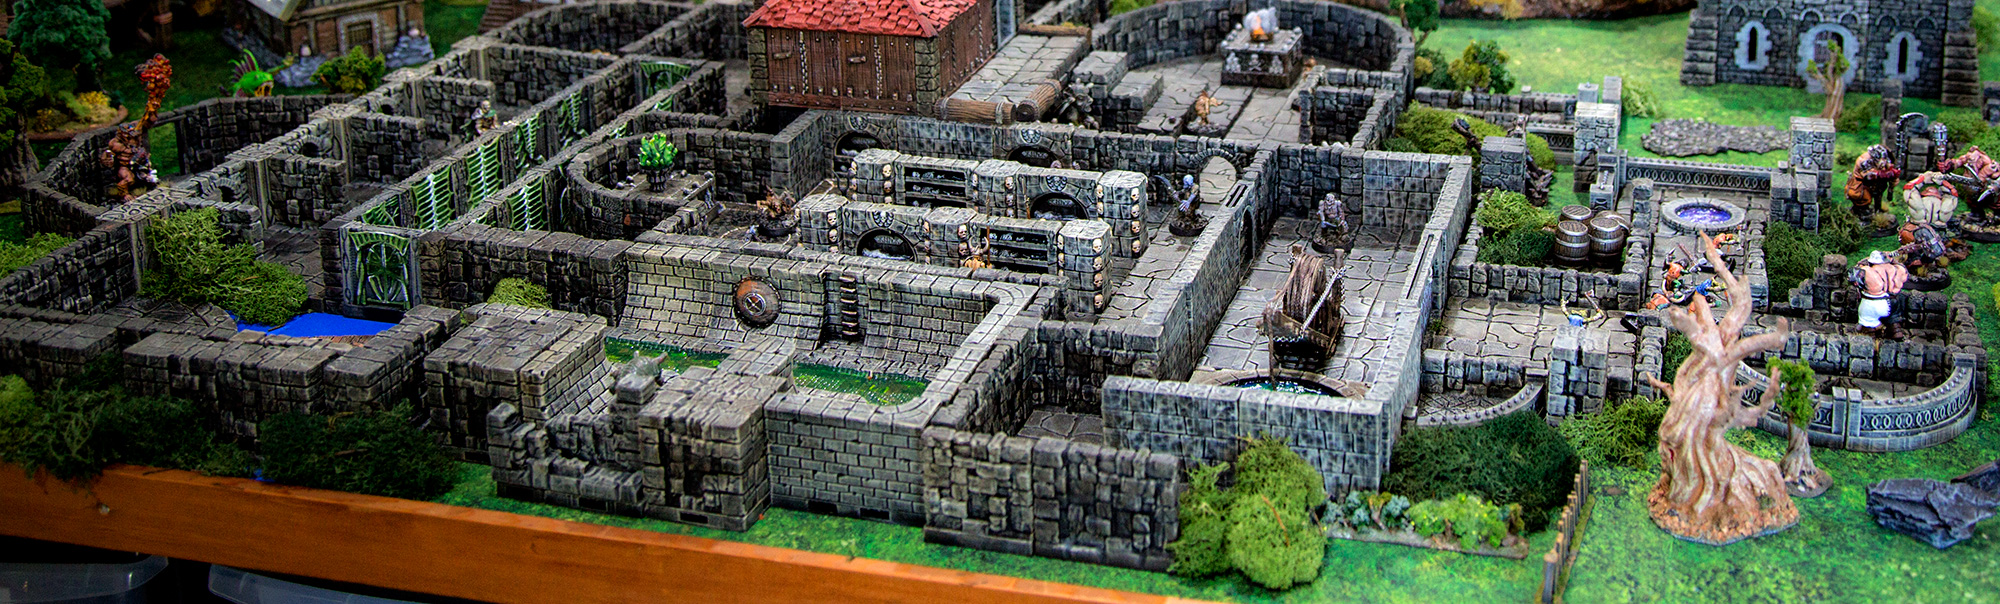 picture about 3d Printable Dungeon Tiles named 3D Printable Dungeon Tiles - Printable Surroundings